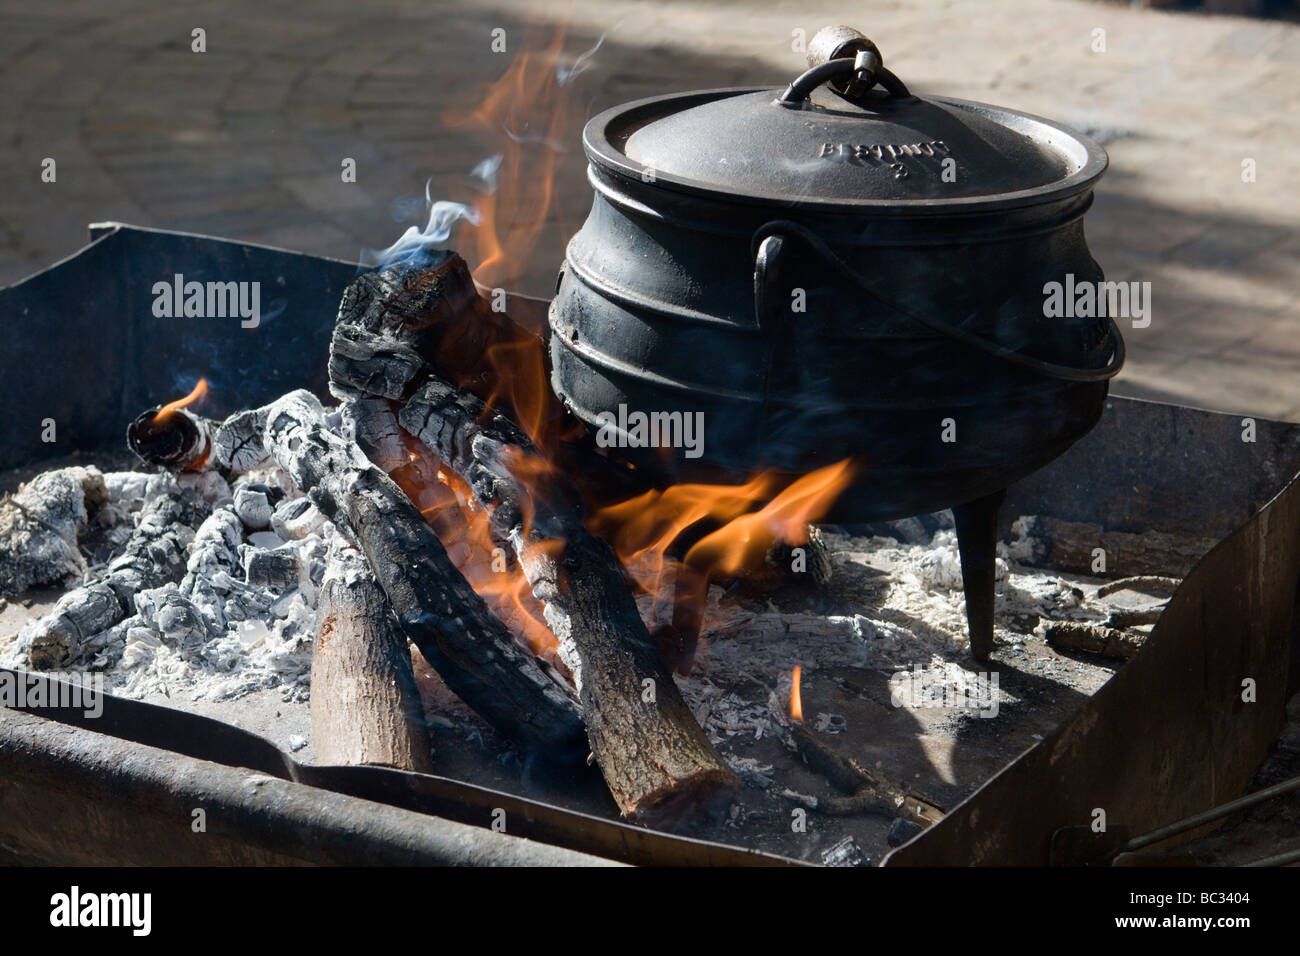 how to cook roast in cast iron pot